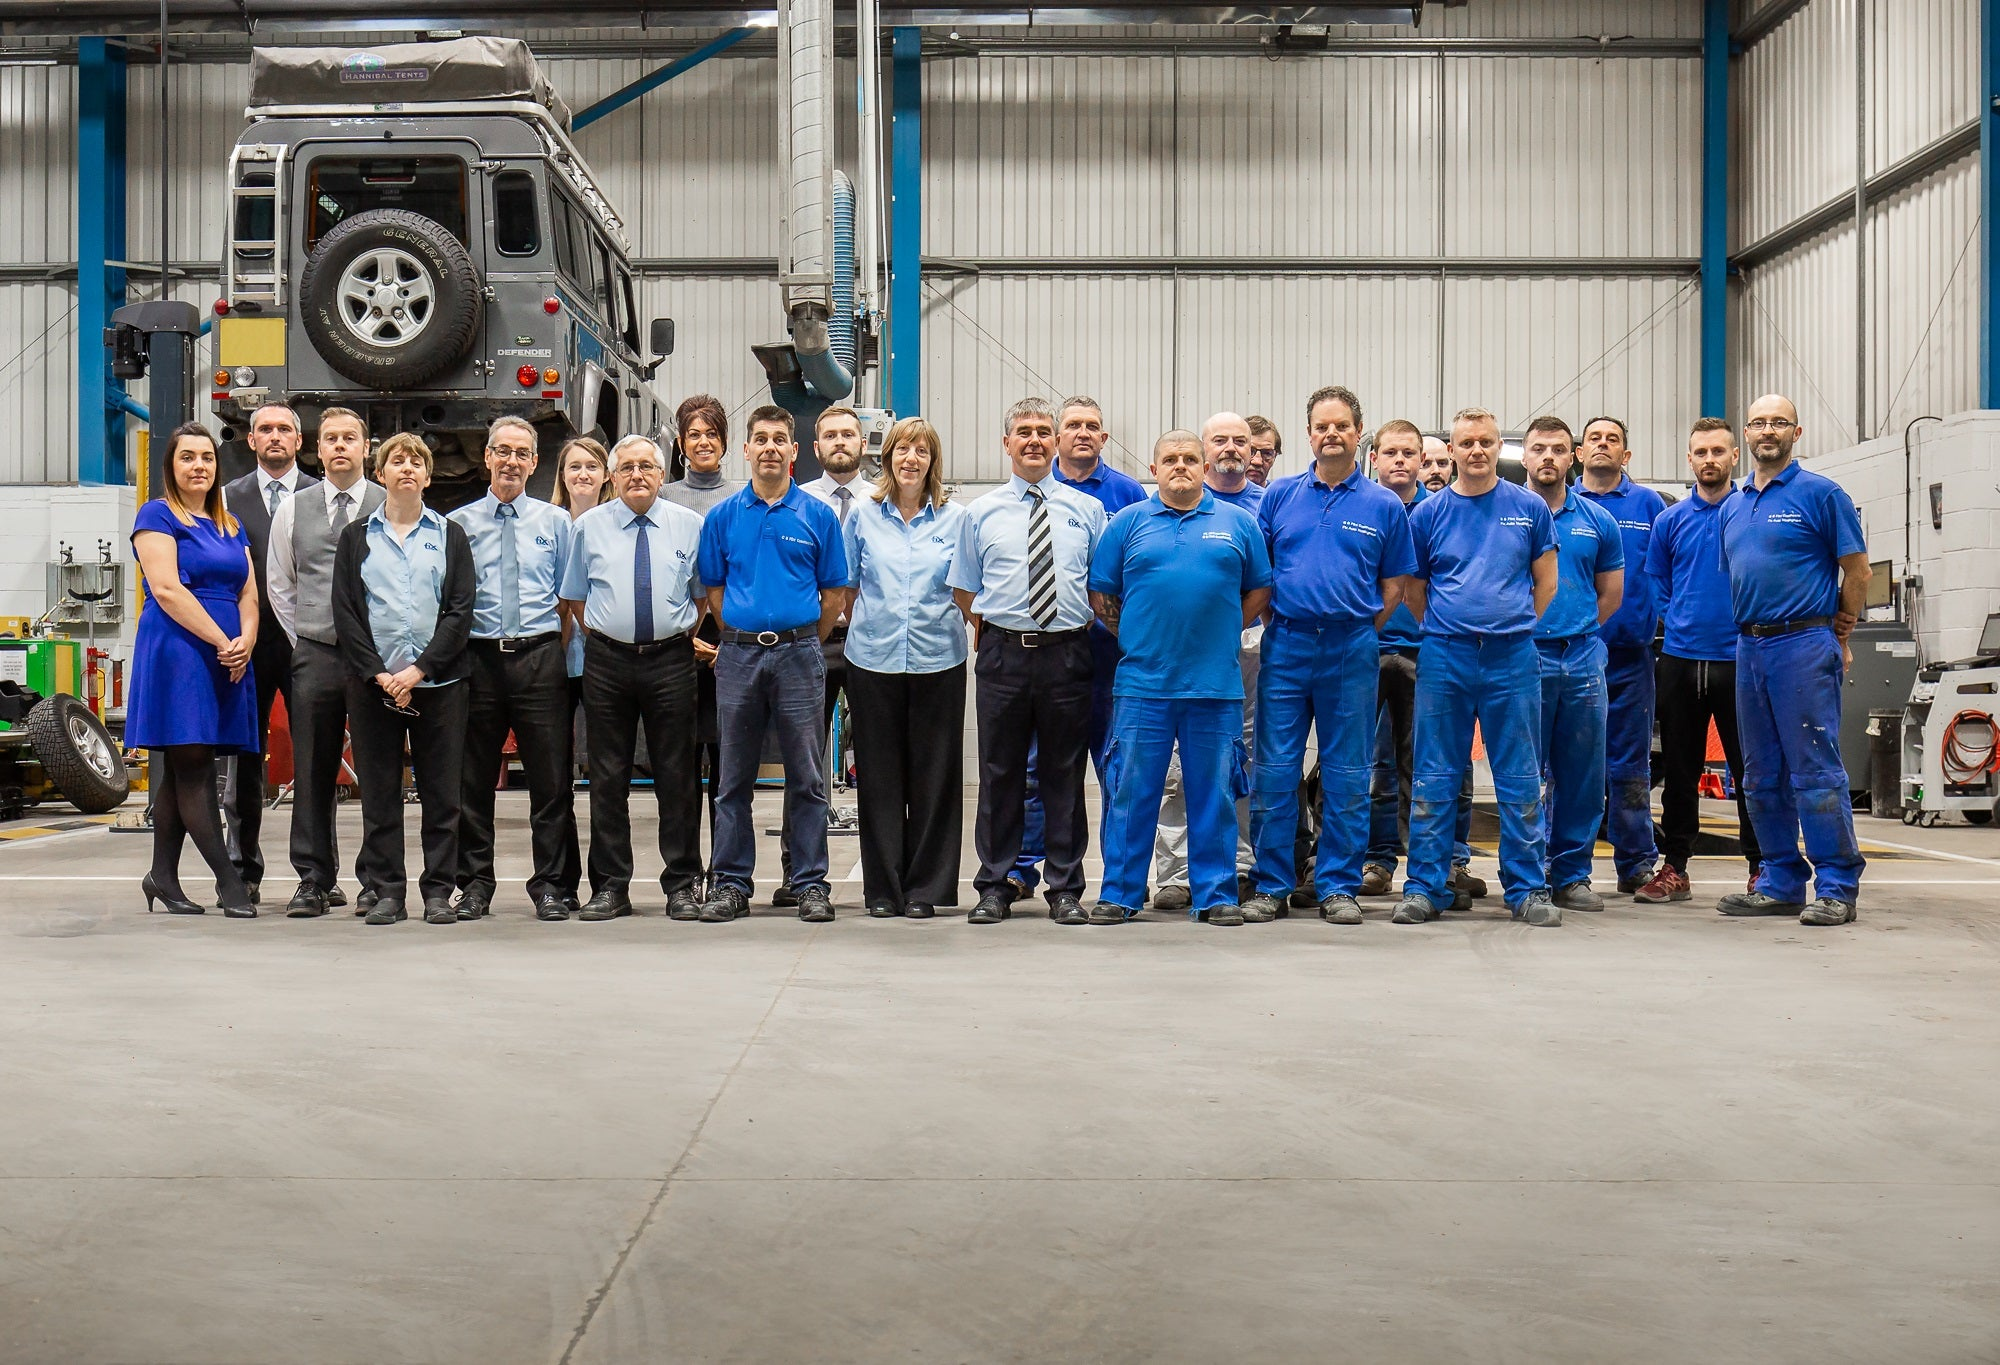 The Full Team at GB Flint Coachworks